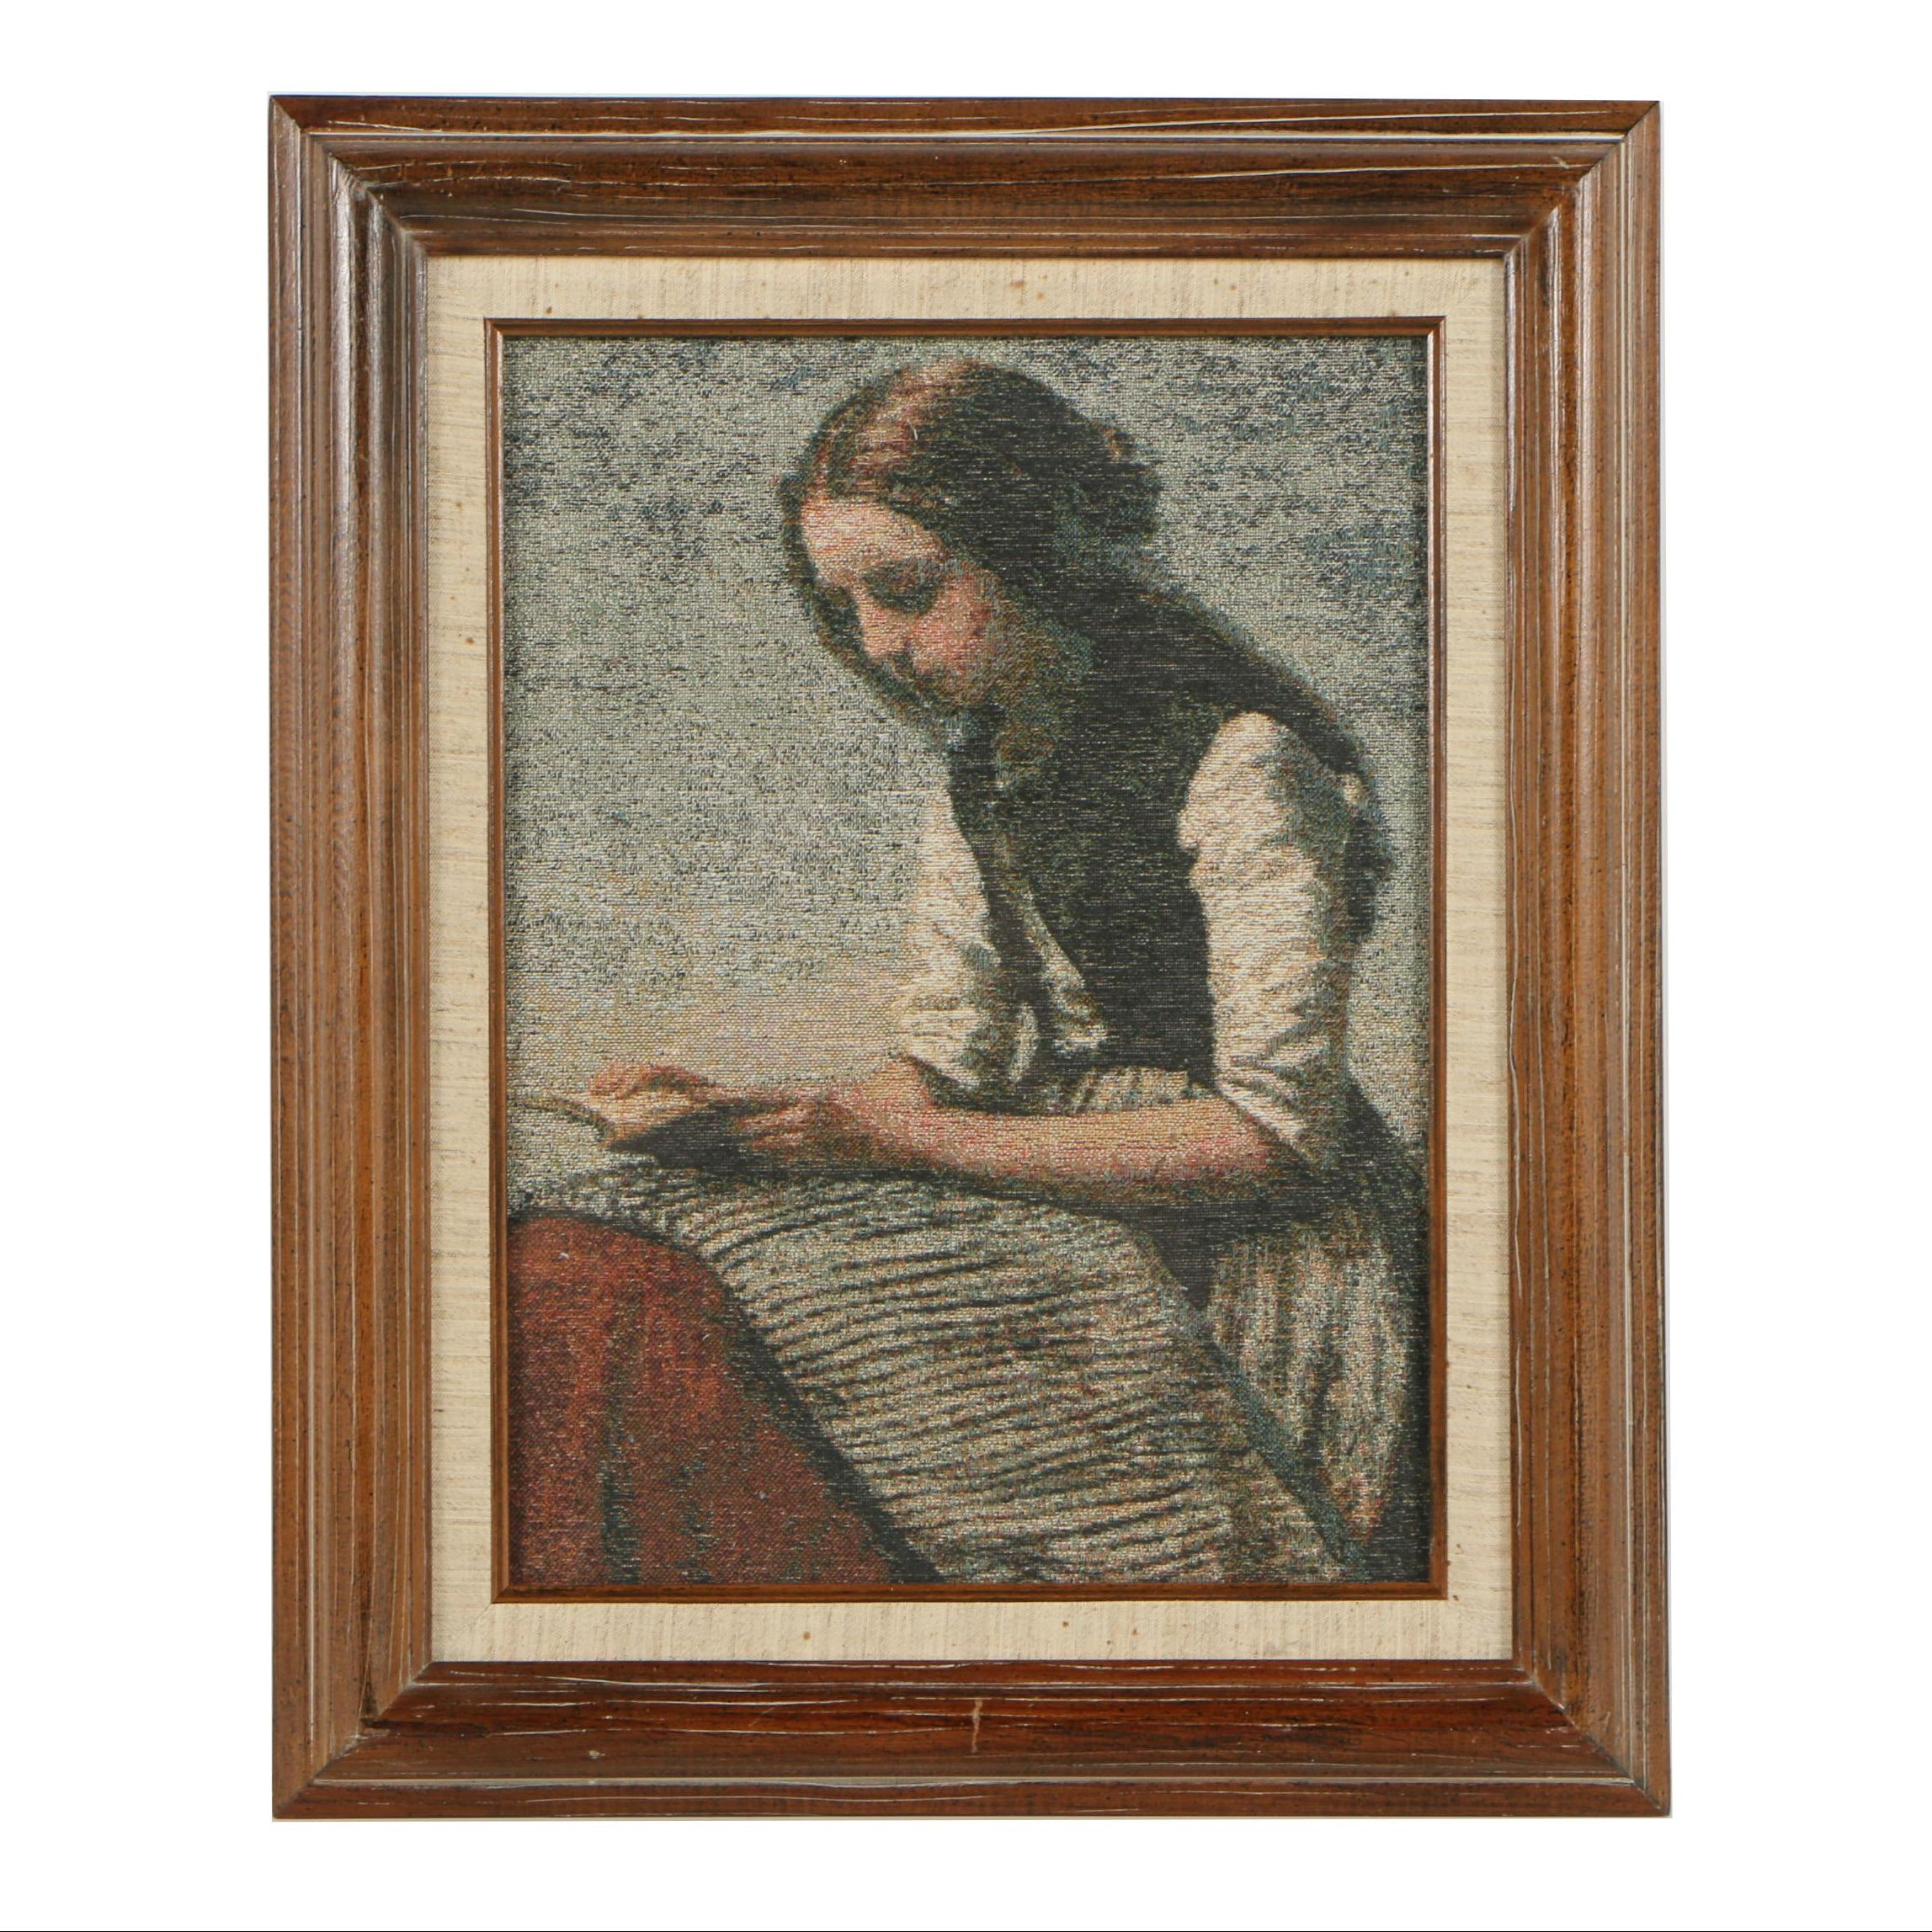 Framed Woven Tapestry of a Girl Reading